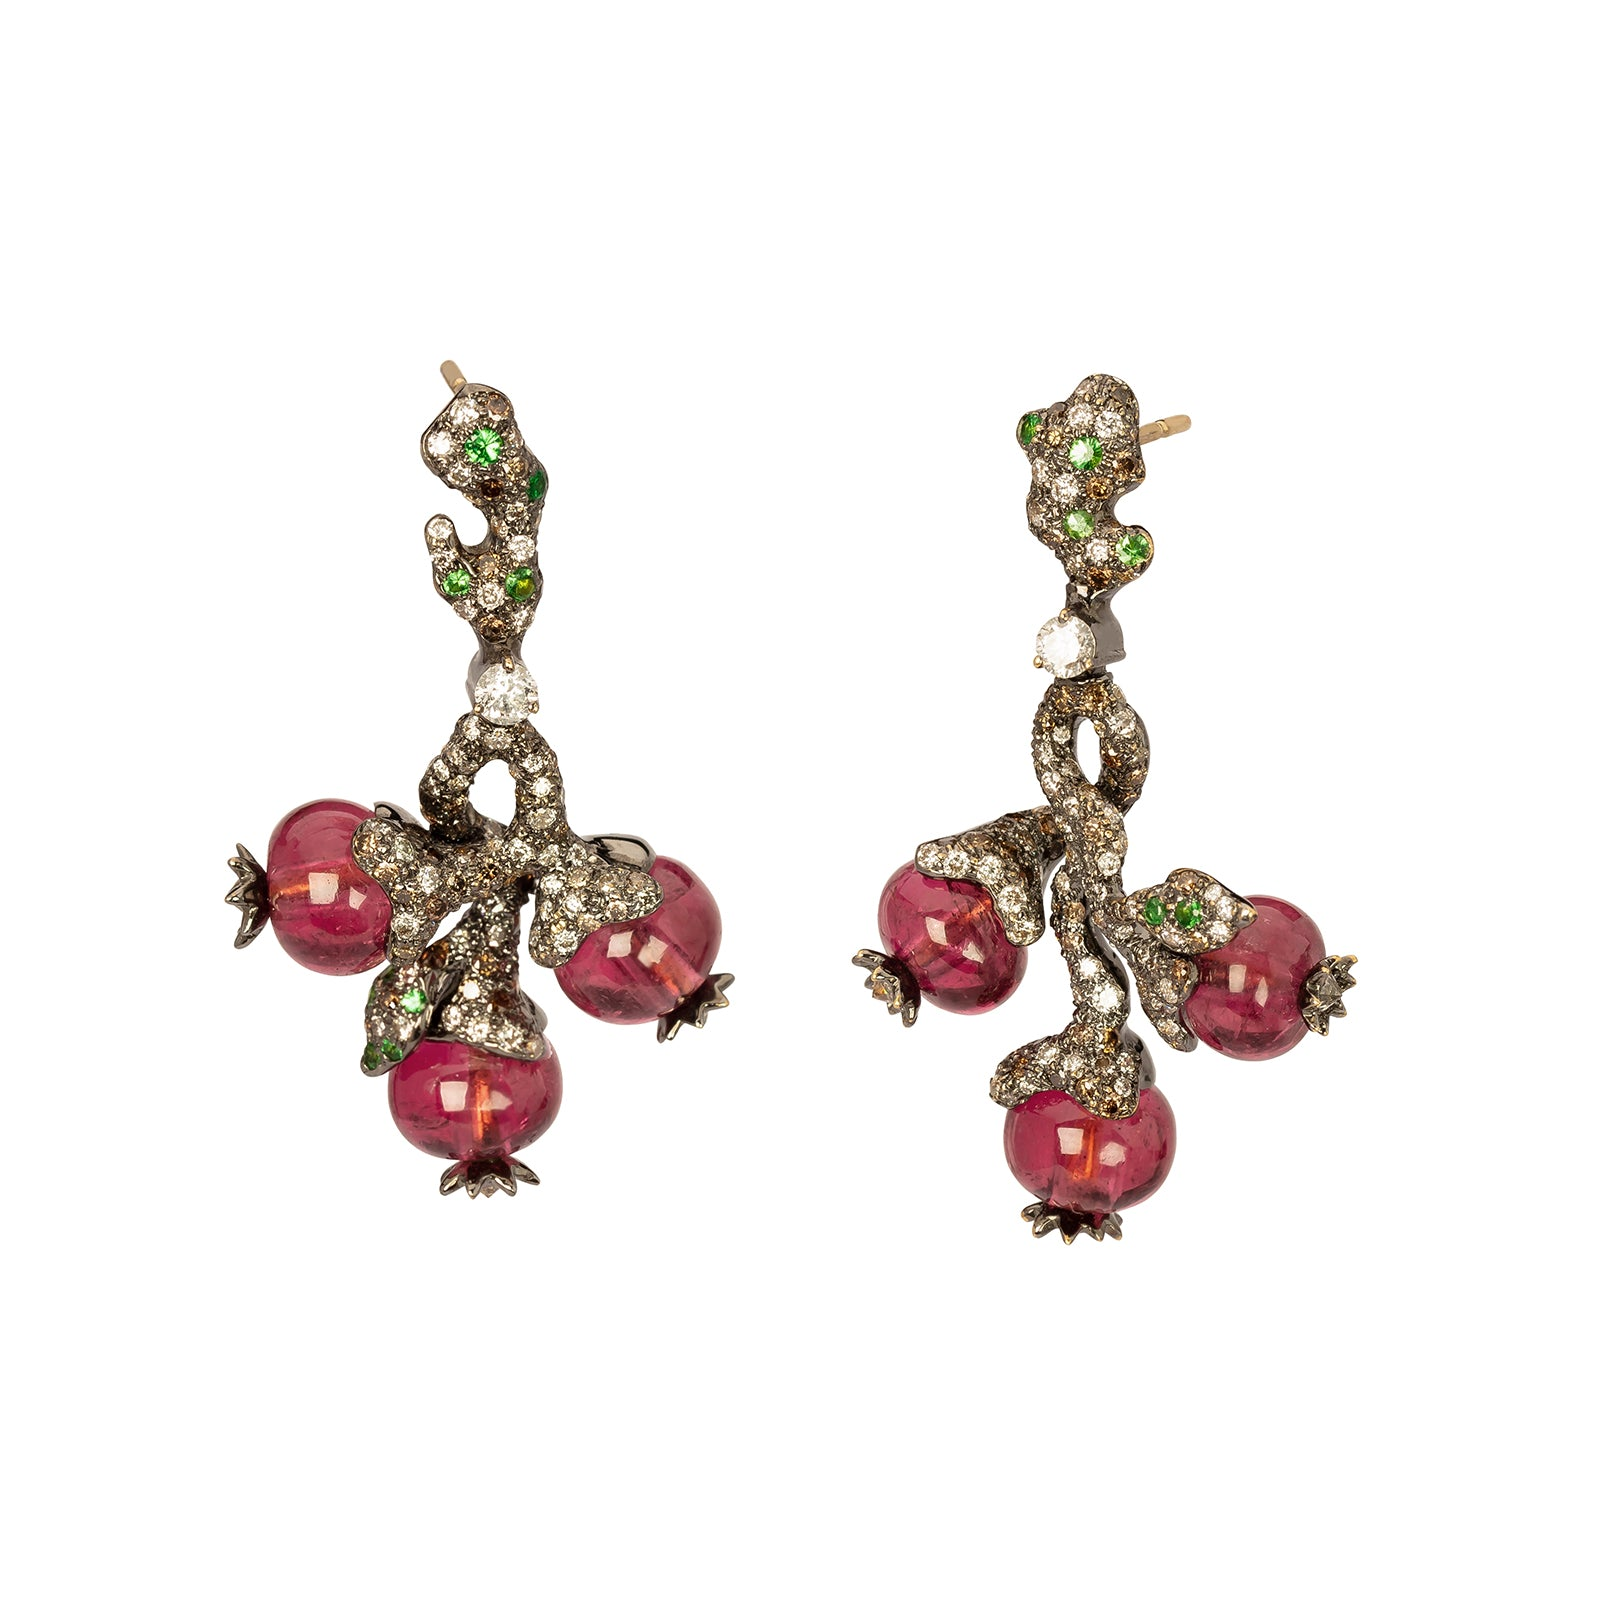 Arunashi Bead Fruit Earrings - Rubellite - Earrings - Broken English Jewelry